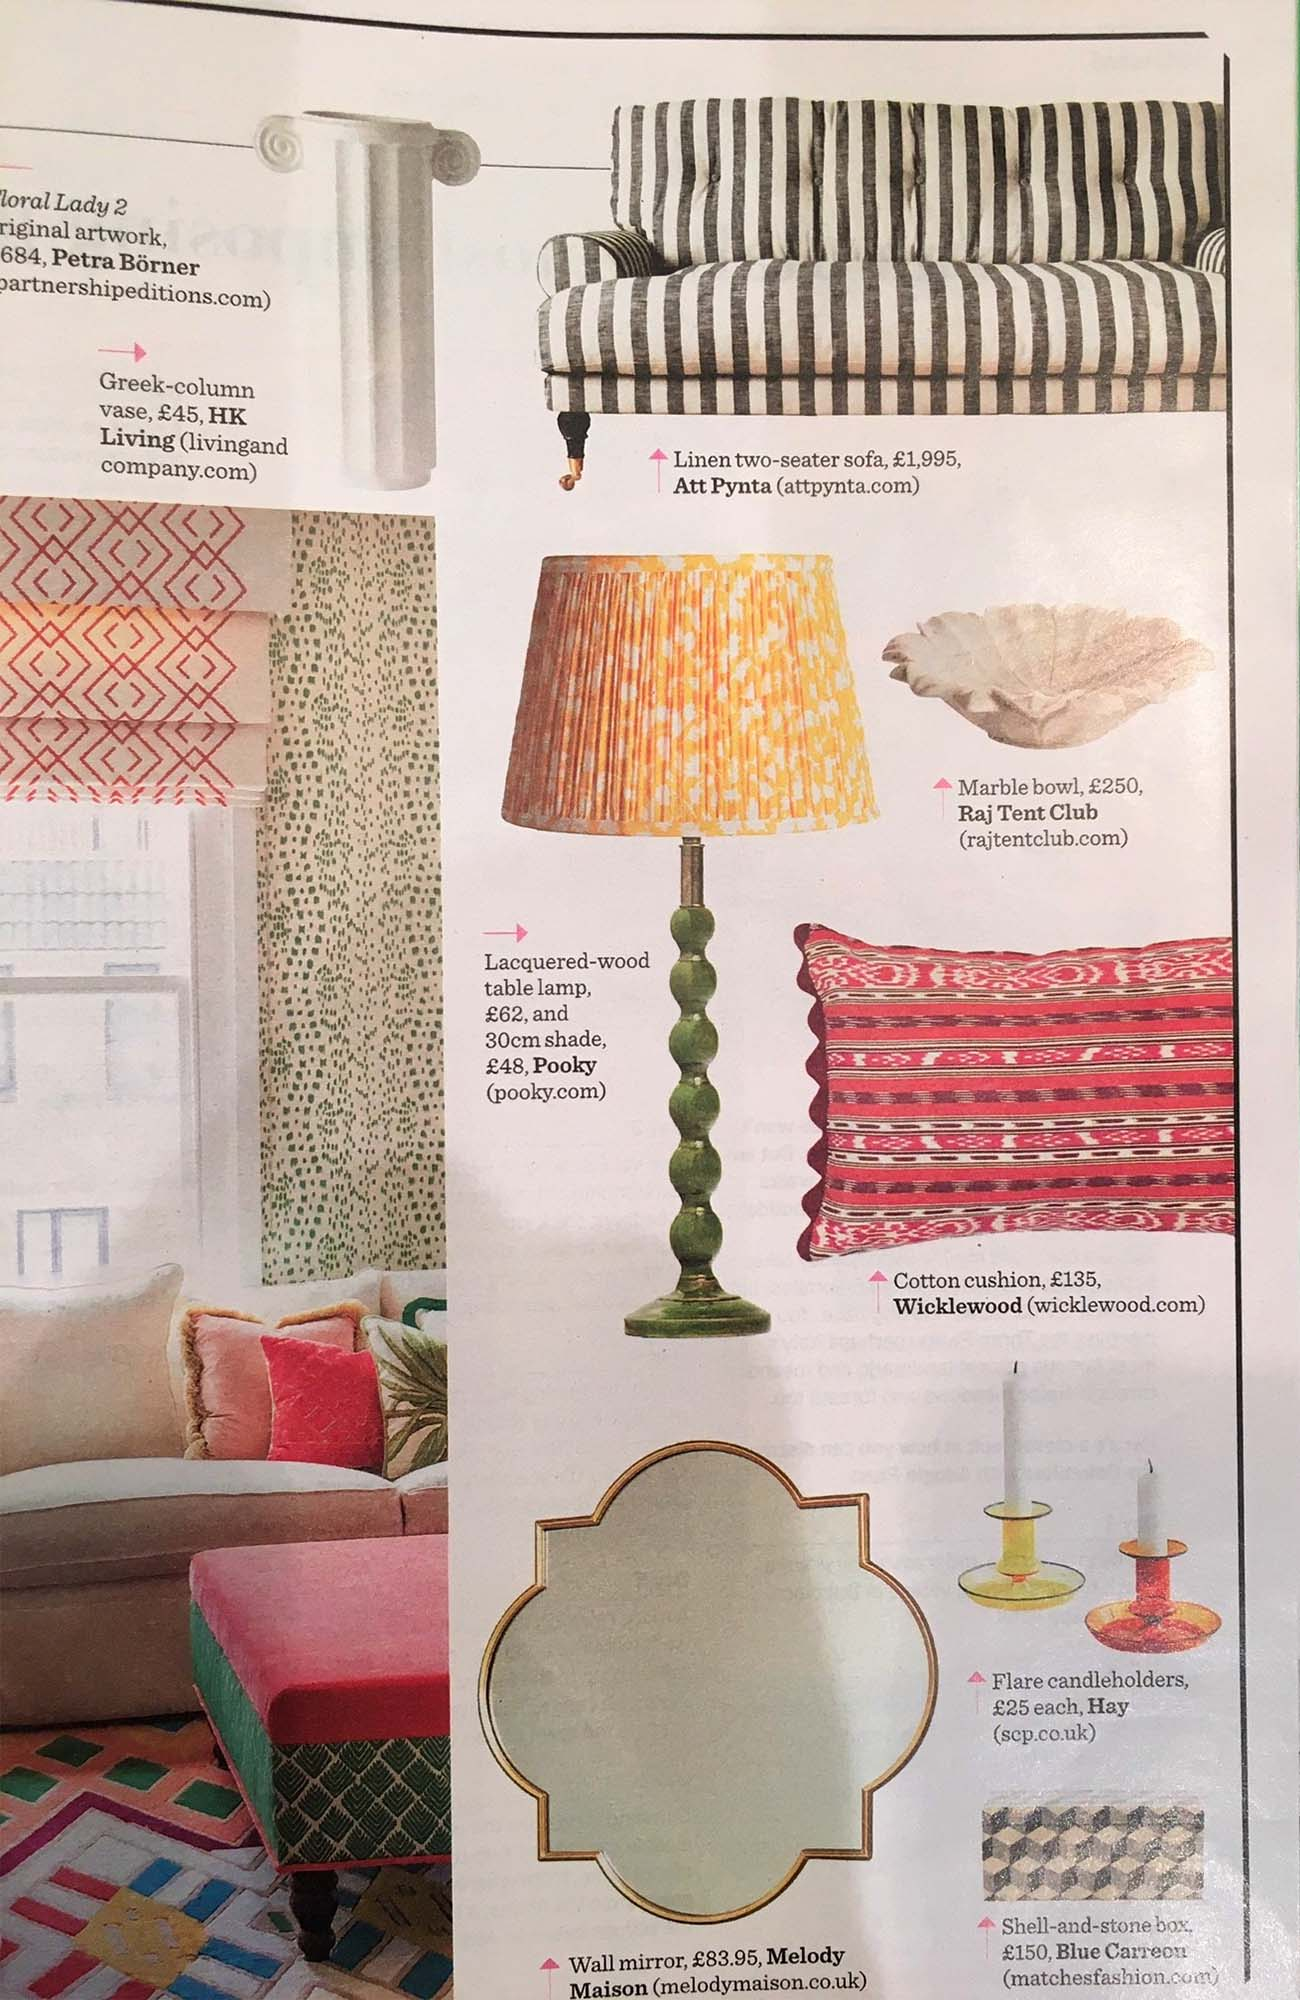 maya cushion featured in The Telegraph